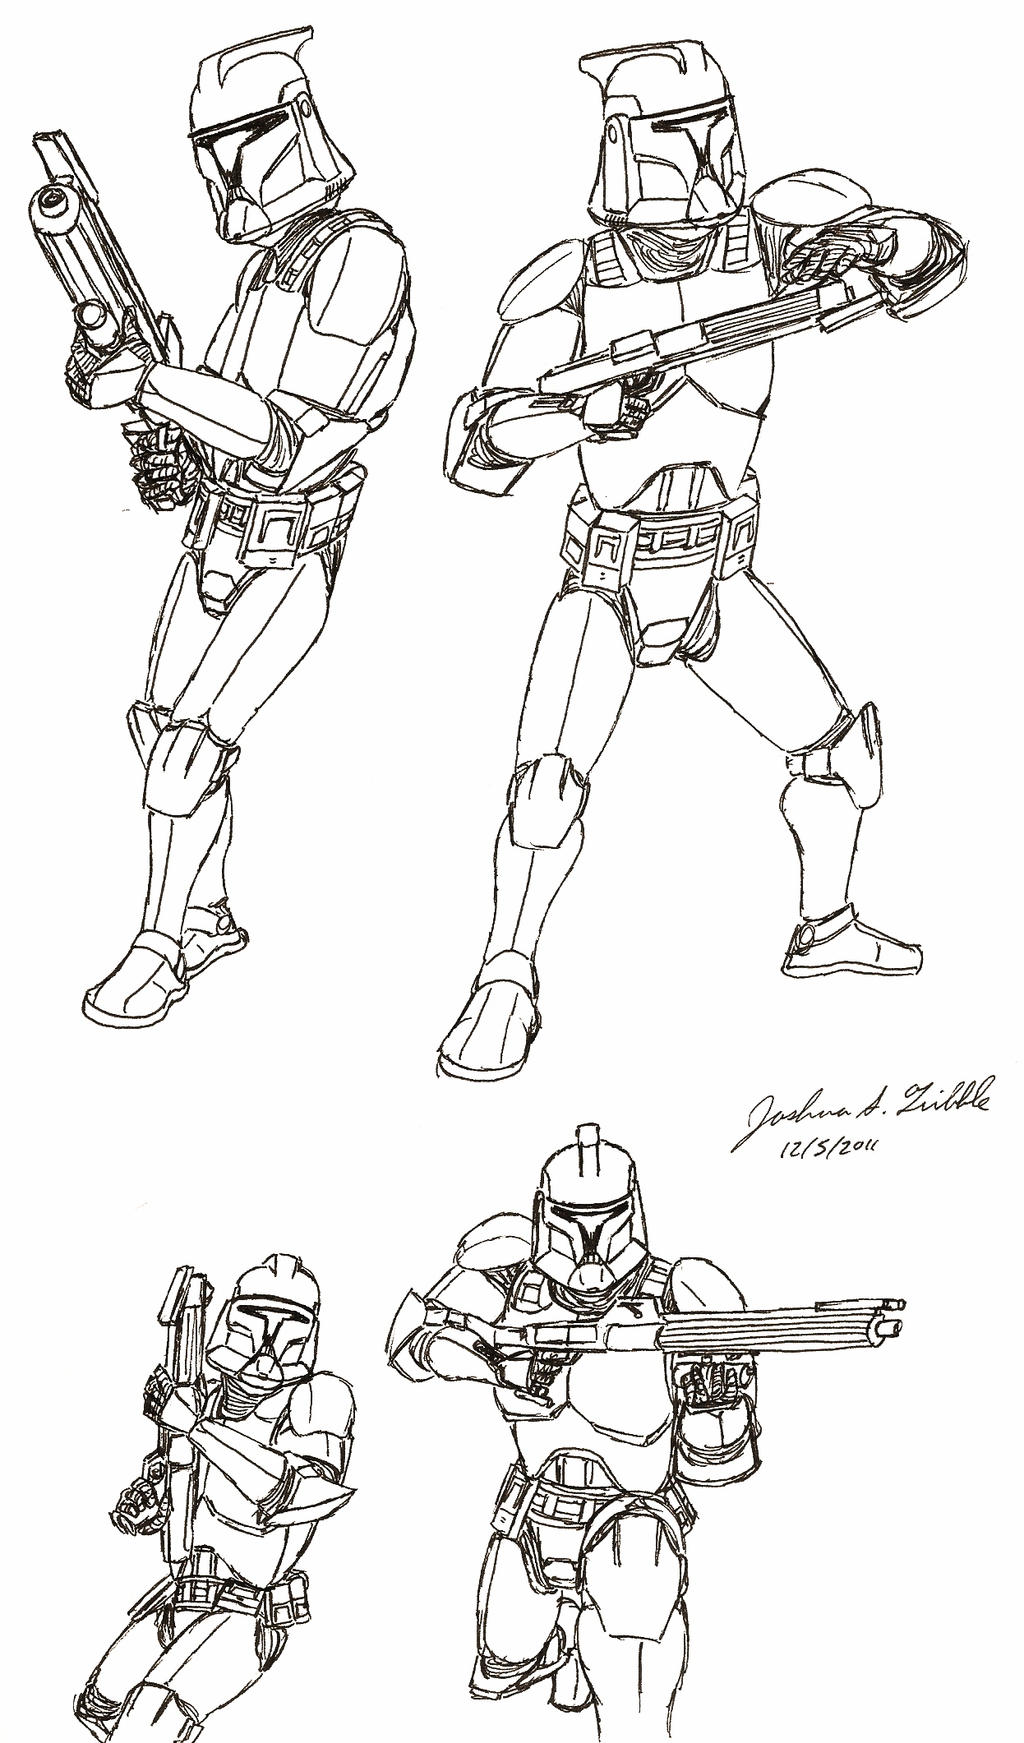 clone trooper sketches 2011 by tribble industries on deviantart